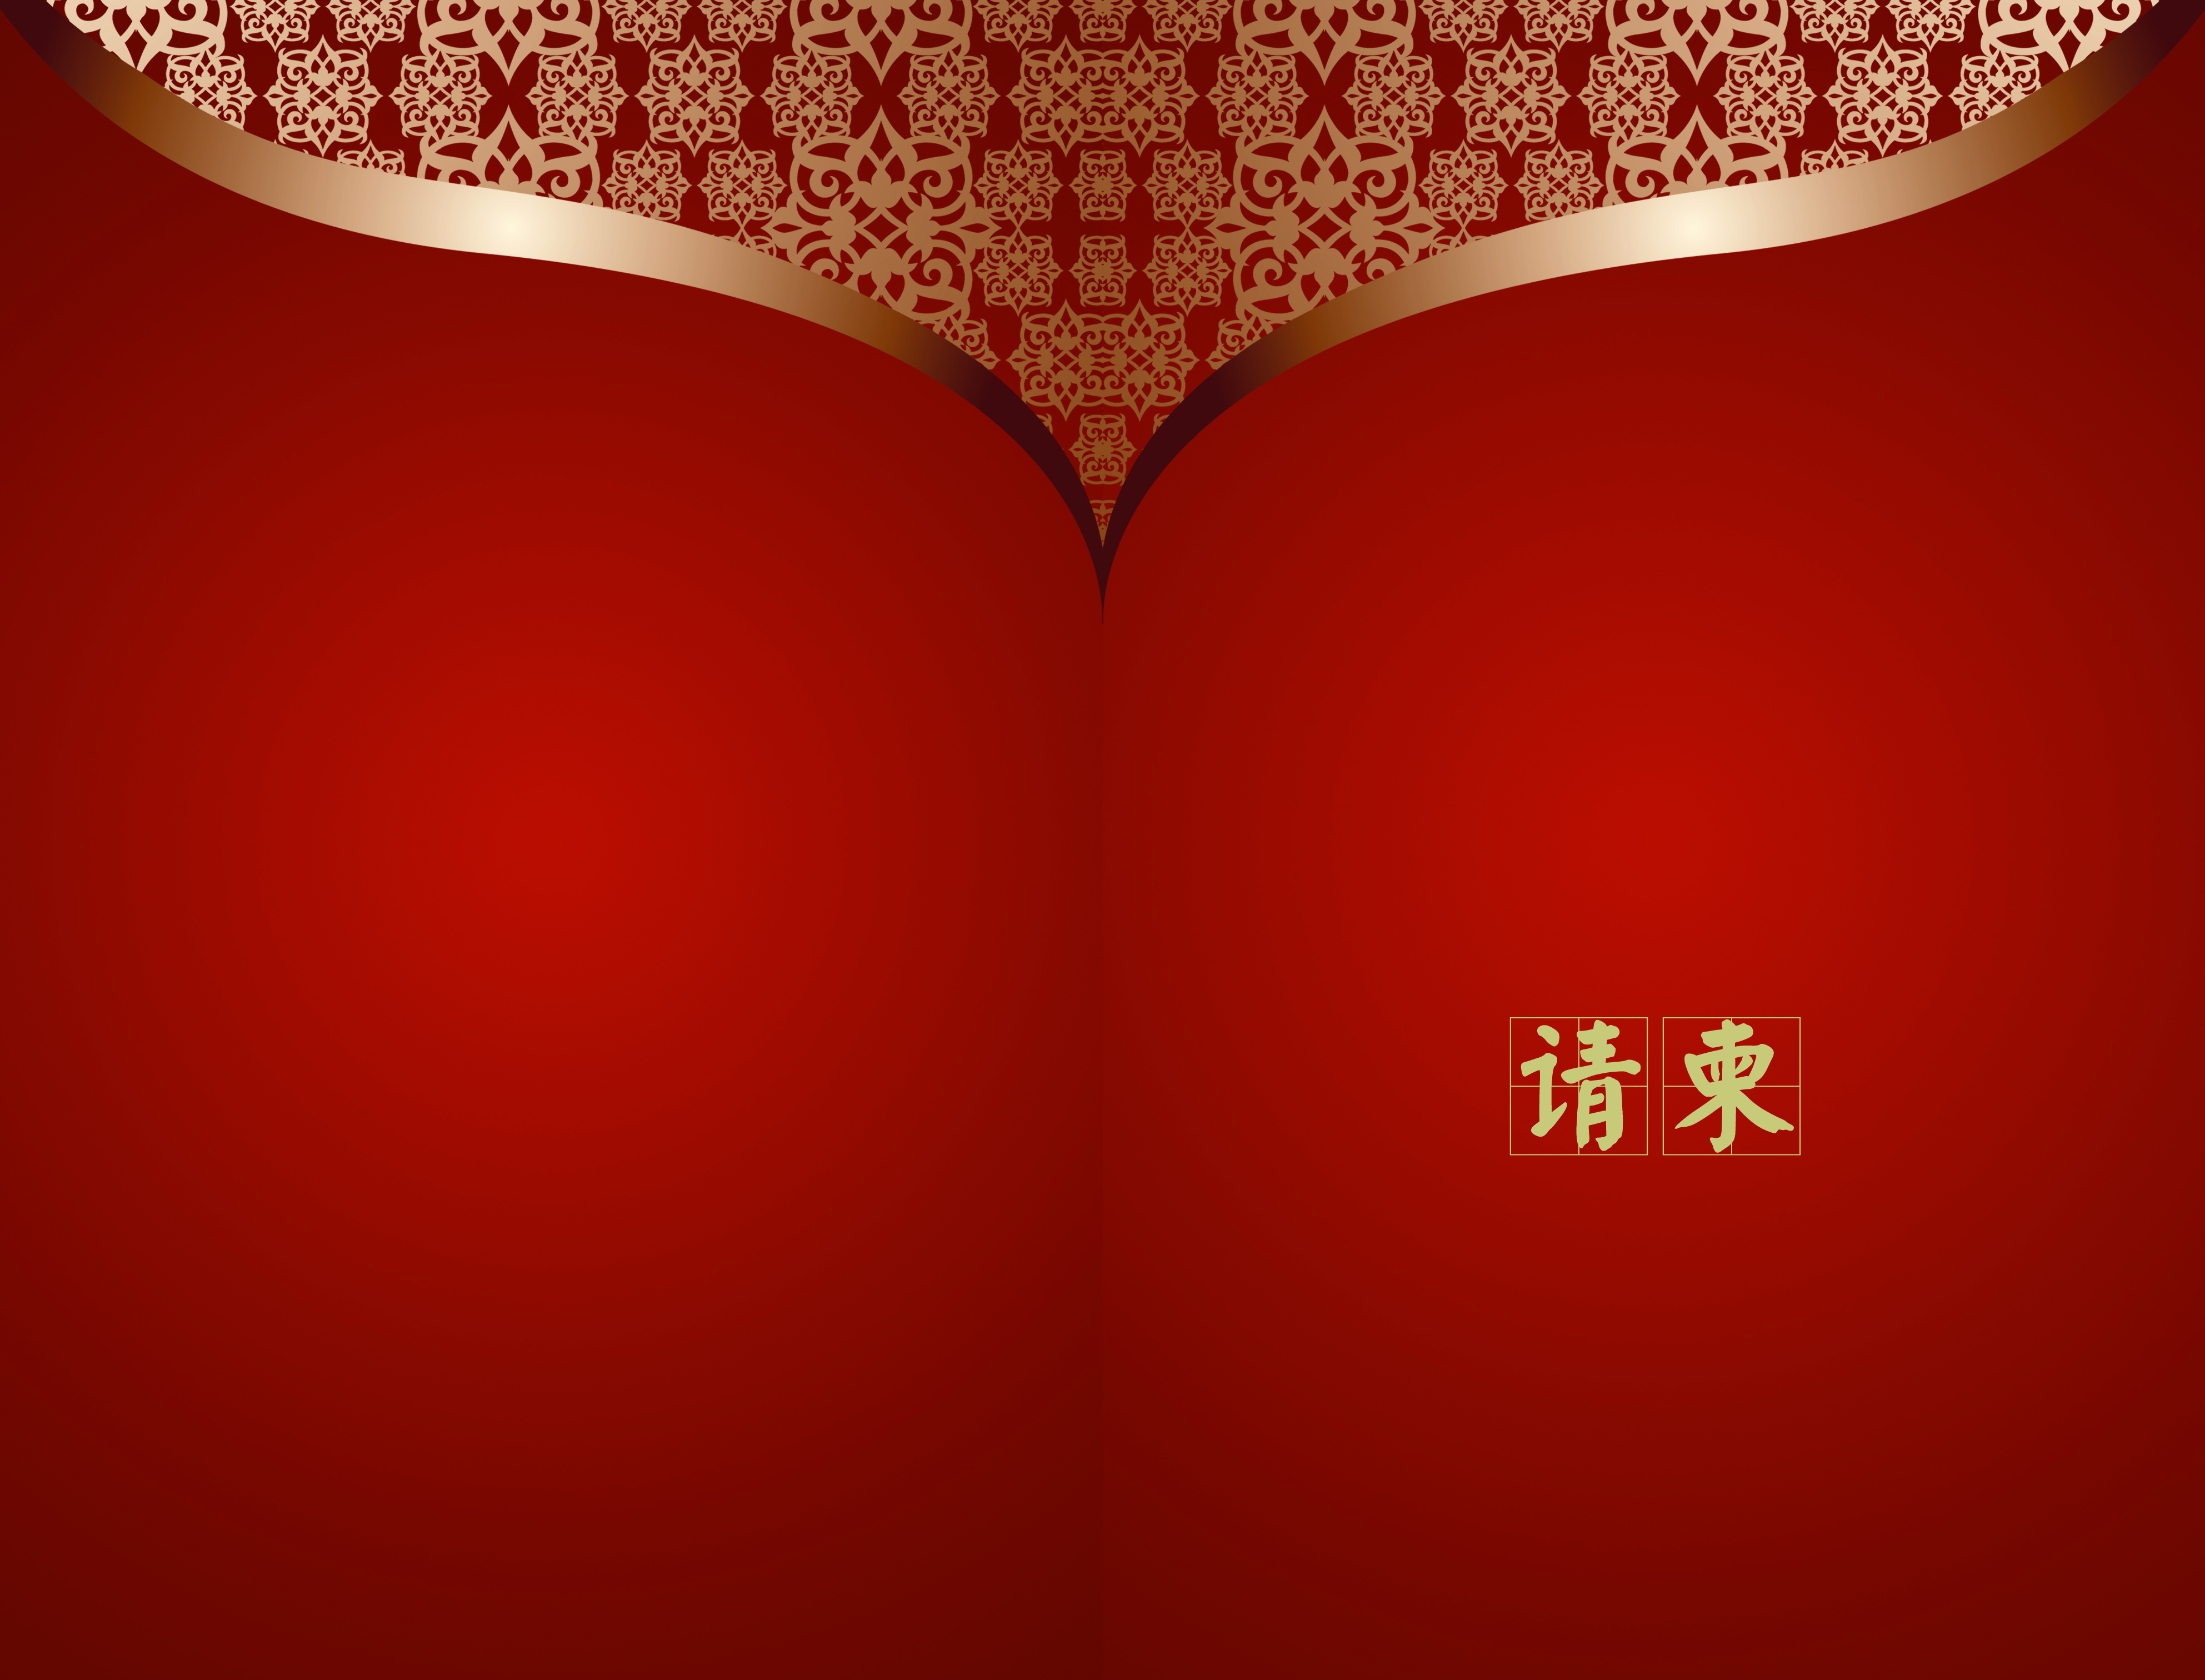 red chinese style elements background invitation  red  invitation  card background image for